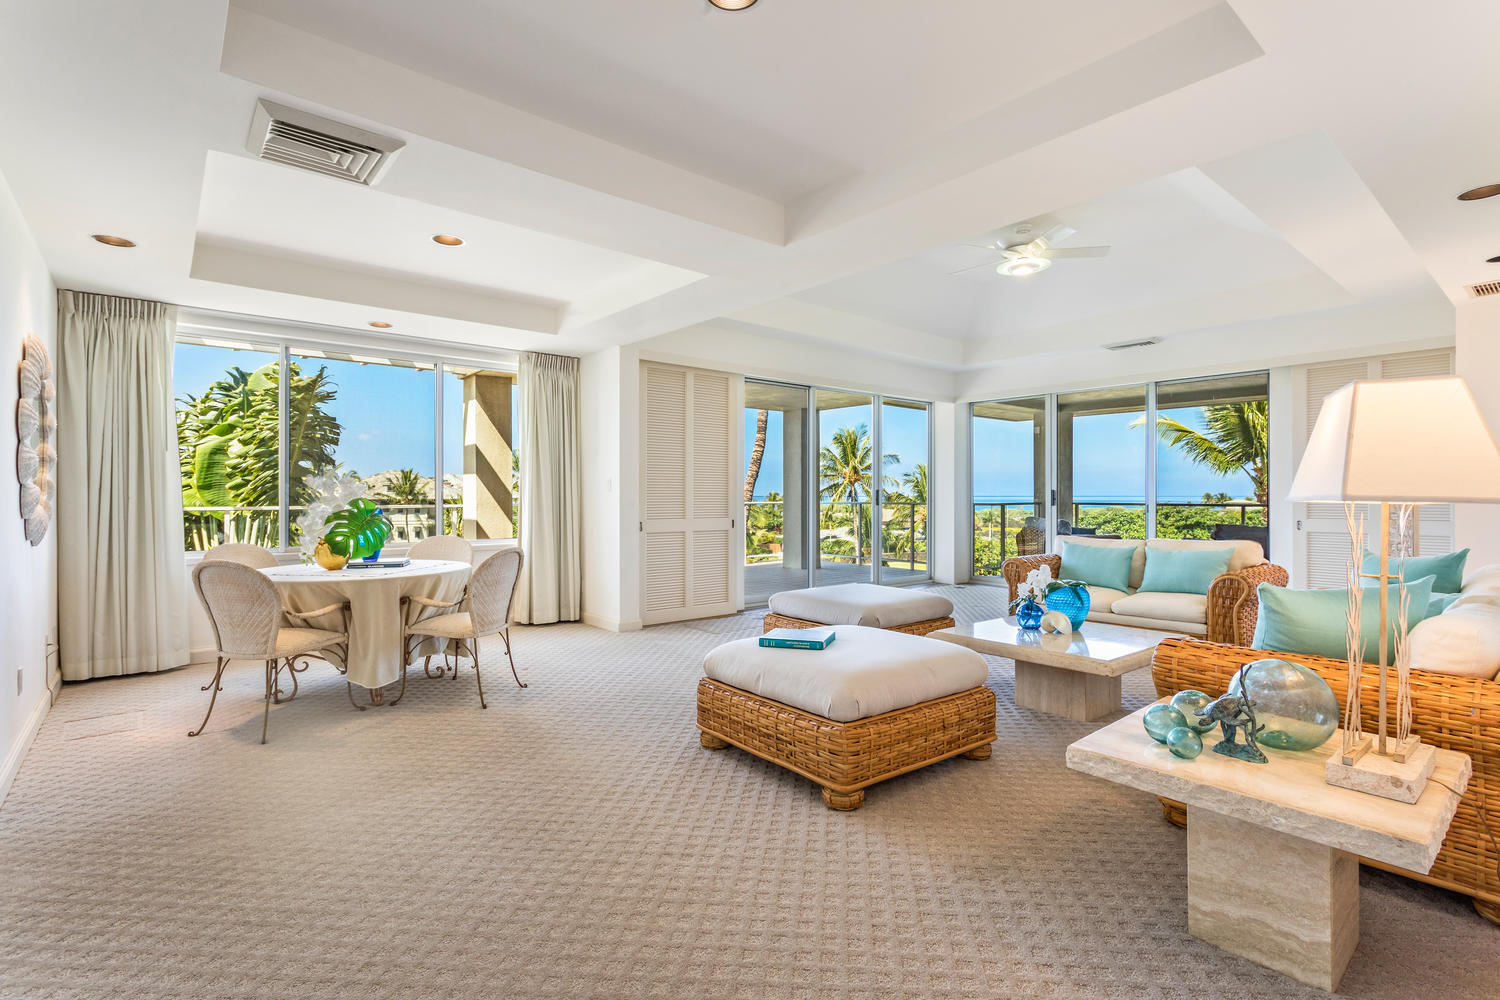 Top 5 staging tips to help sell your home